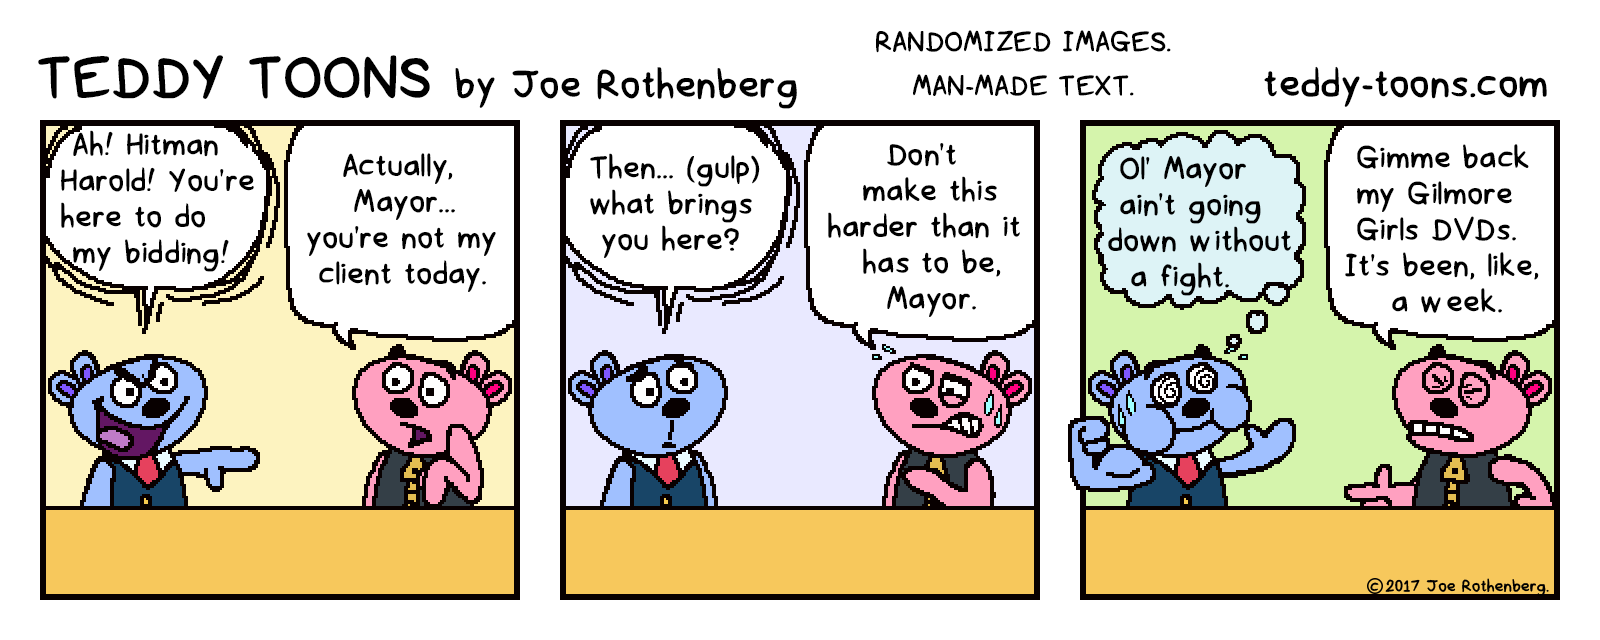 02-17-17.png